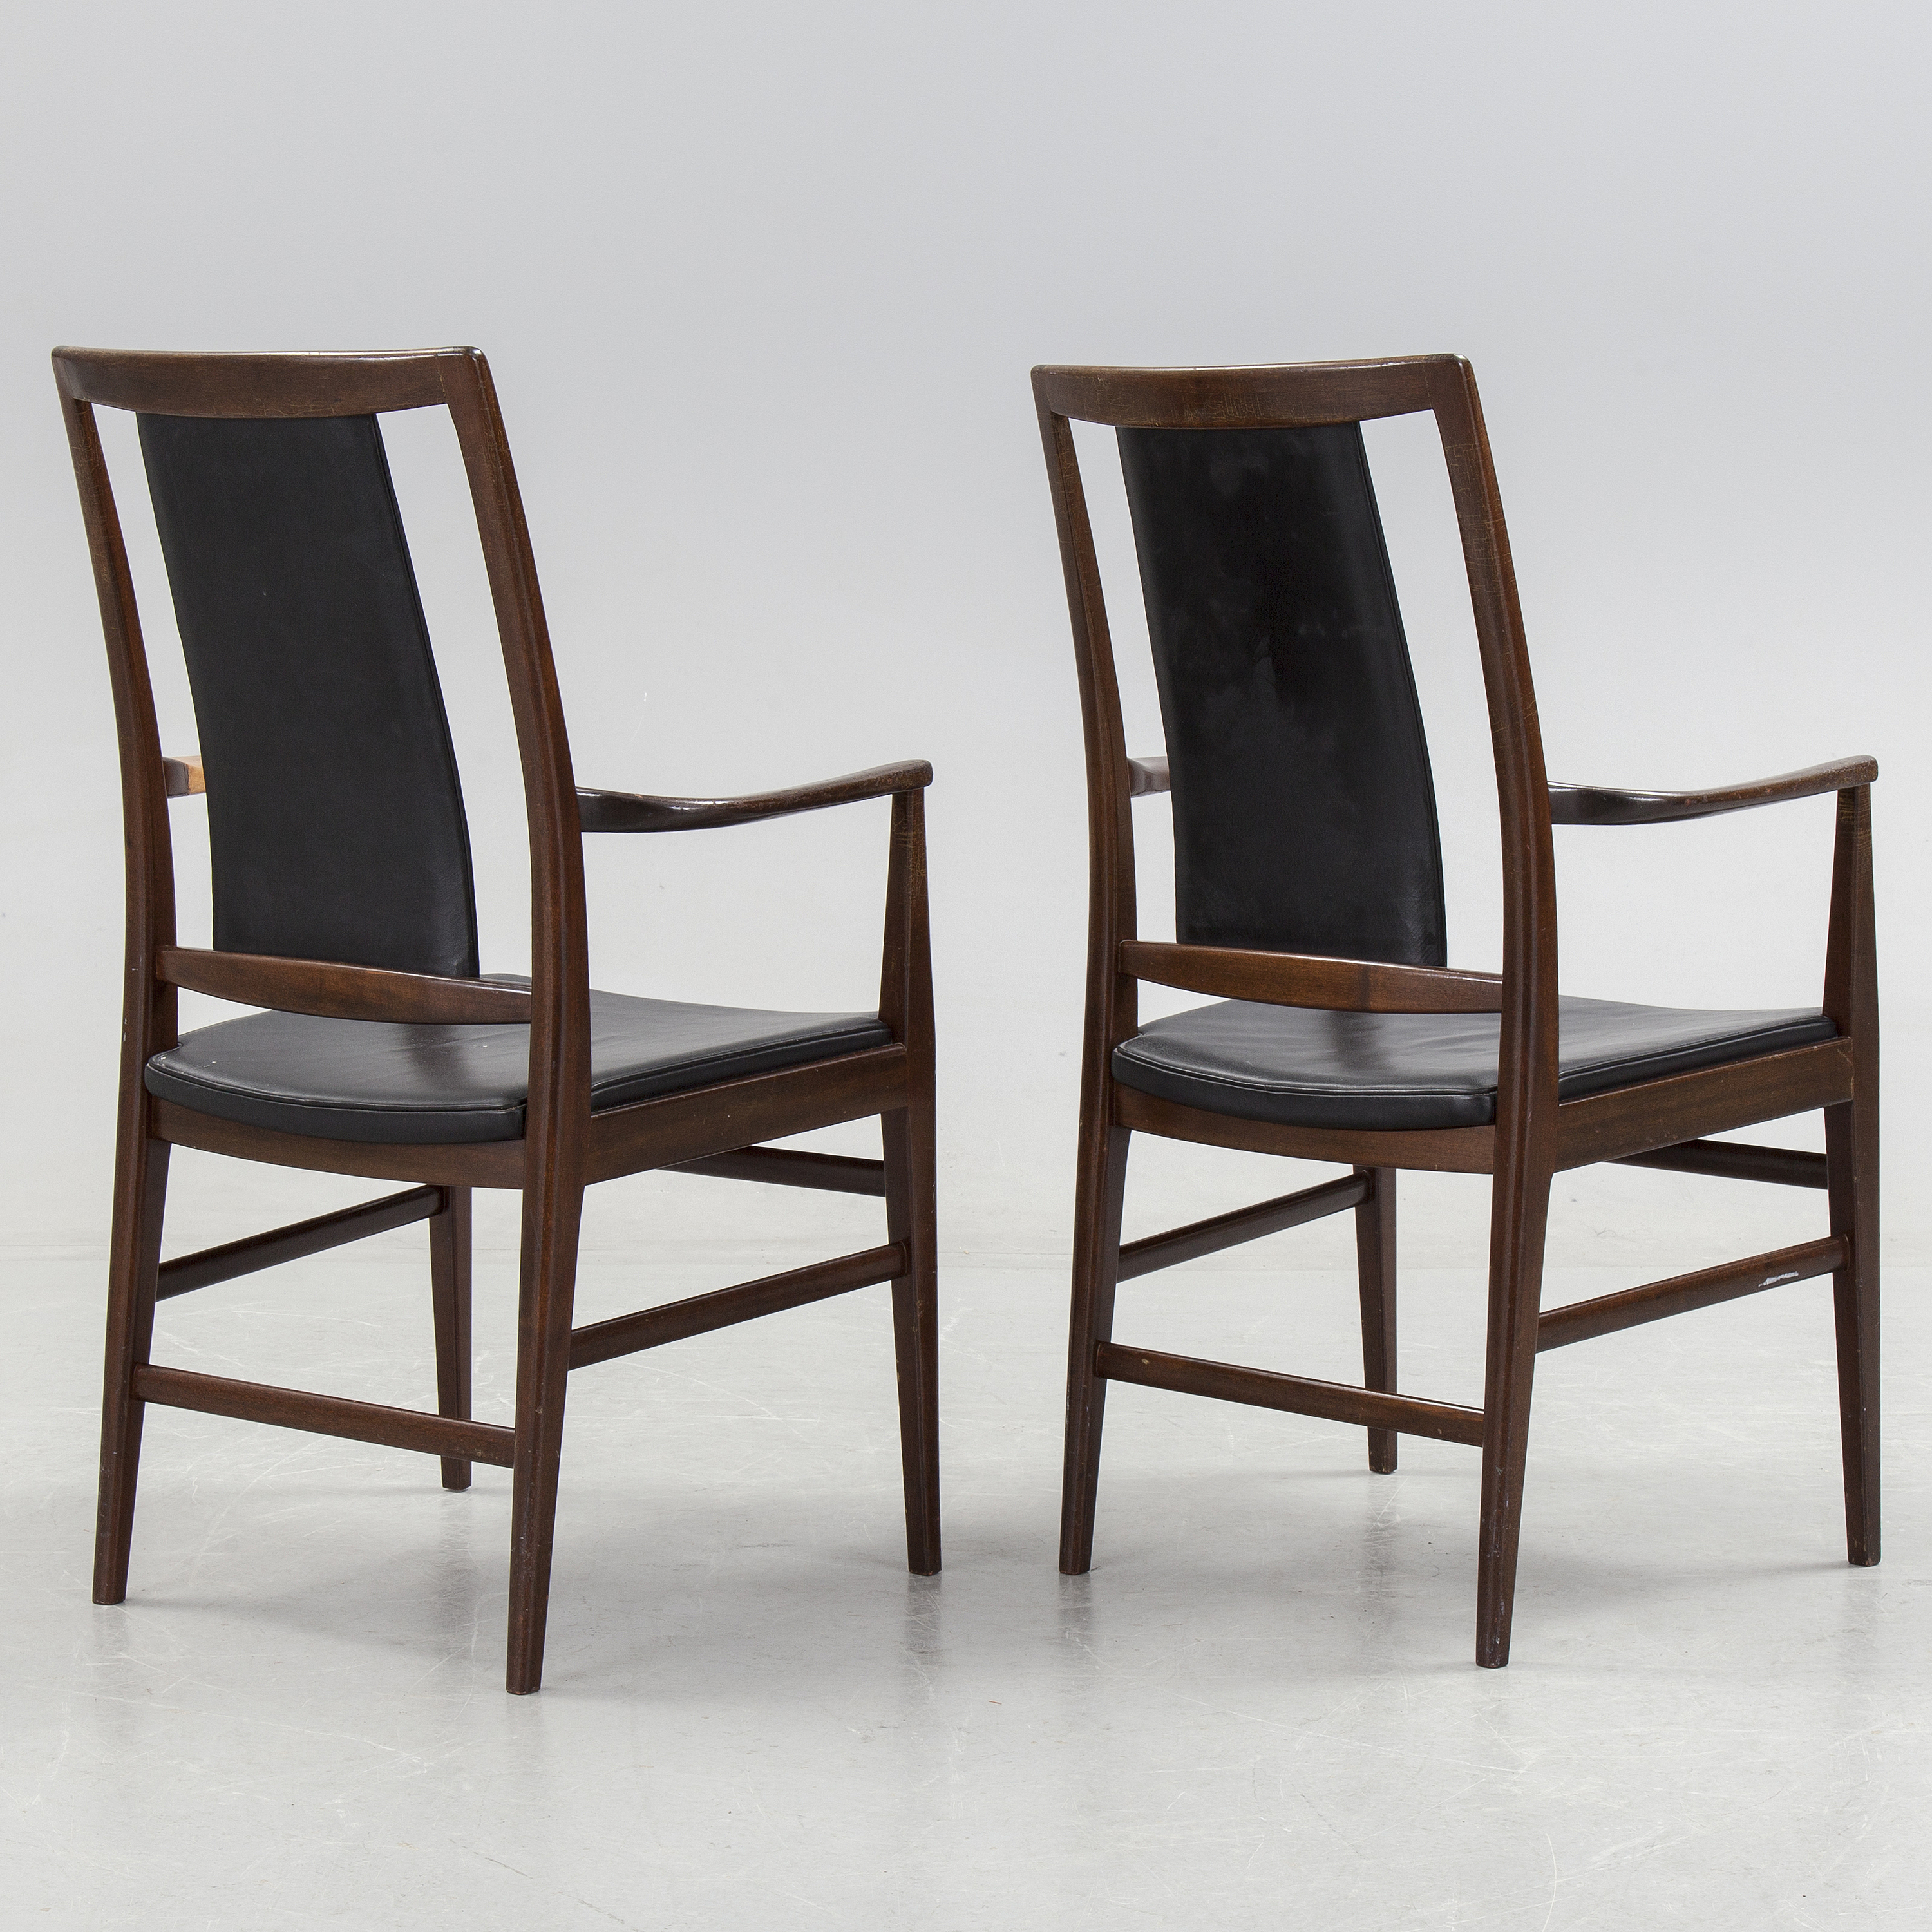 Office Cabin Interior Design, A 1950 S Dining Table Four Chairs And A Pair Of Carver Chairs Bukowskis